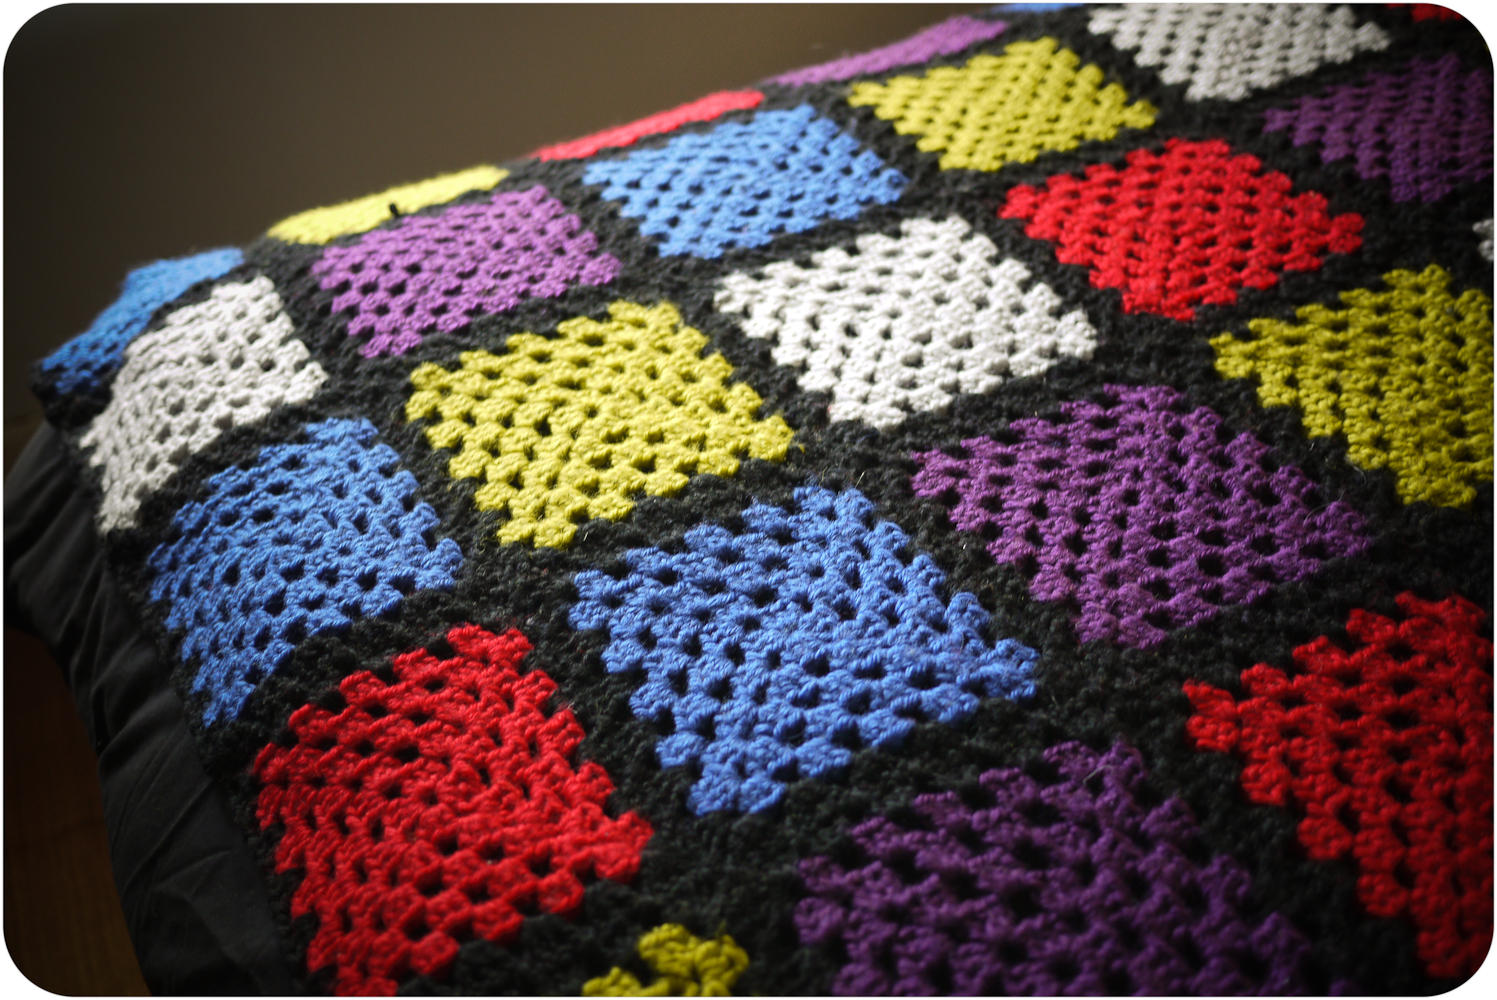 Square Crochet Blanket - Crochet Club